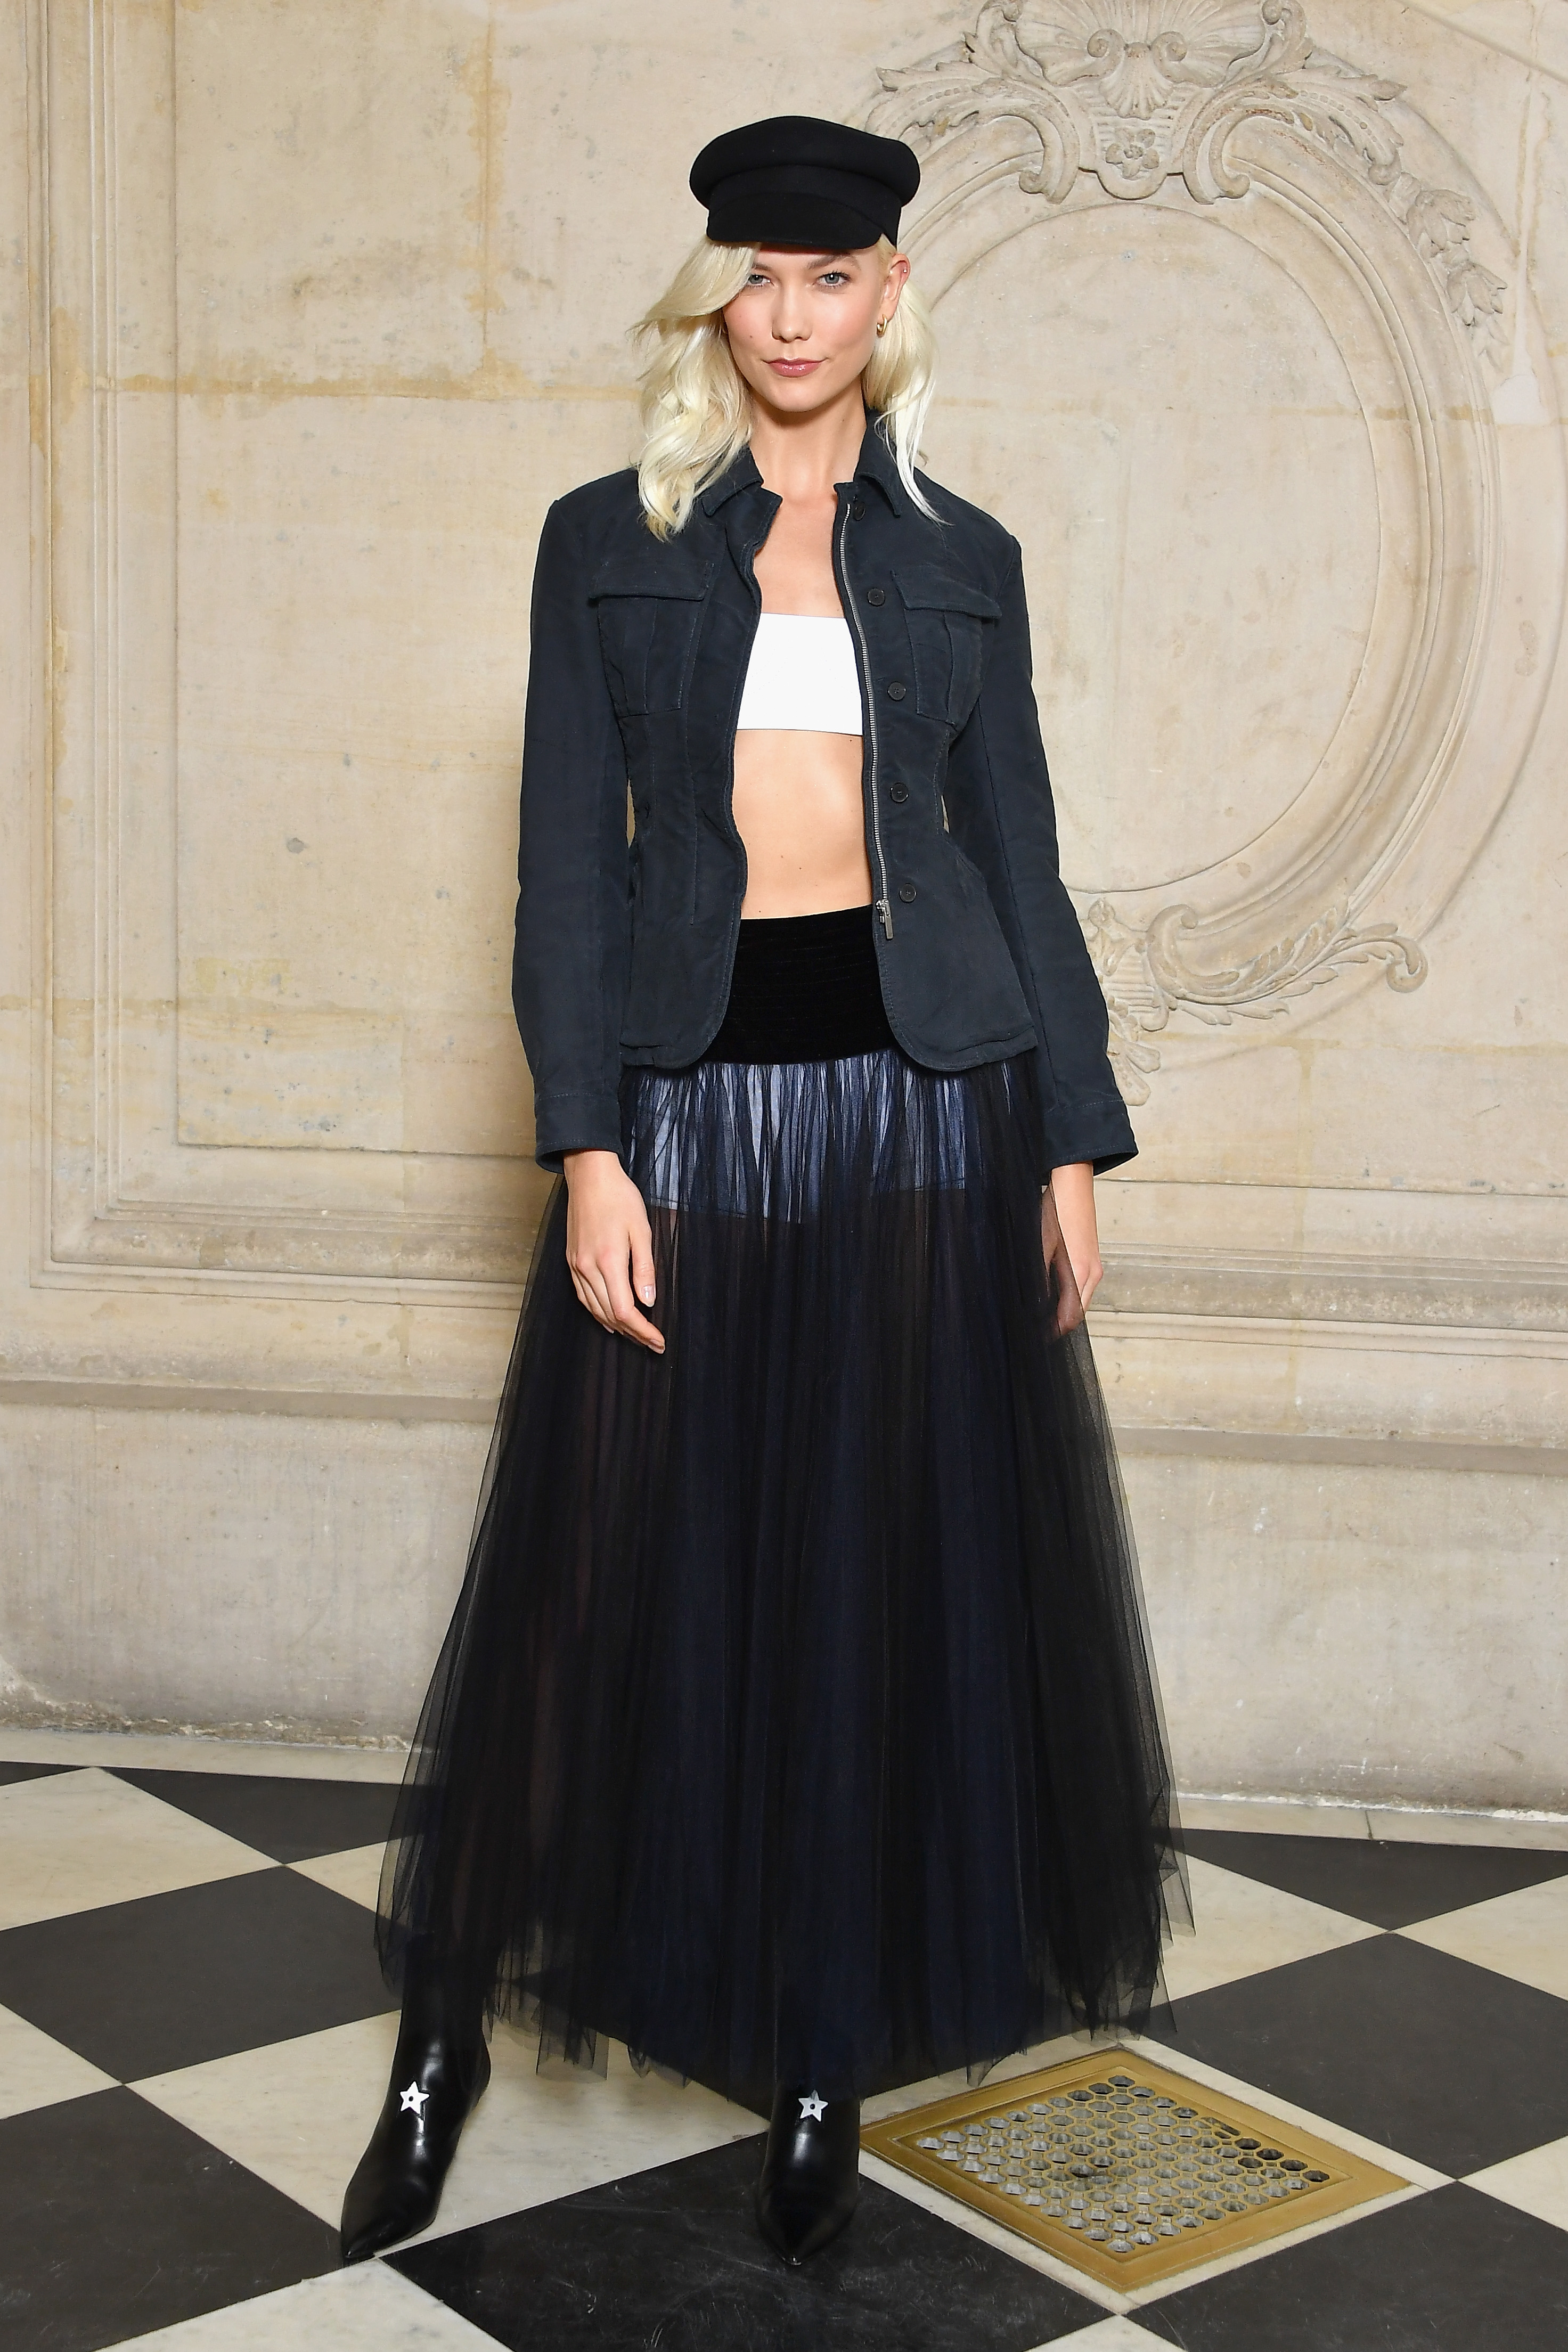 PARIS, FRANCE - SEPTEMBER 26: Karlie Kloss attends the Christian Dior show as part of the Paris Fashion Week Womenswear Spring/Summer 2018 on September 26, 2017 in Paris, France. (Photo by Pascal Le Segretain/Getty Images for Dior) *** Local Caption *** Karlie Kloss